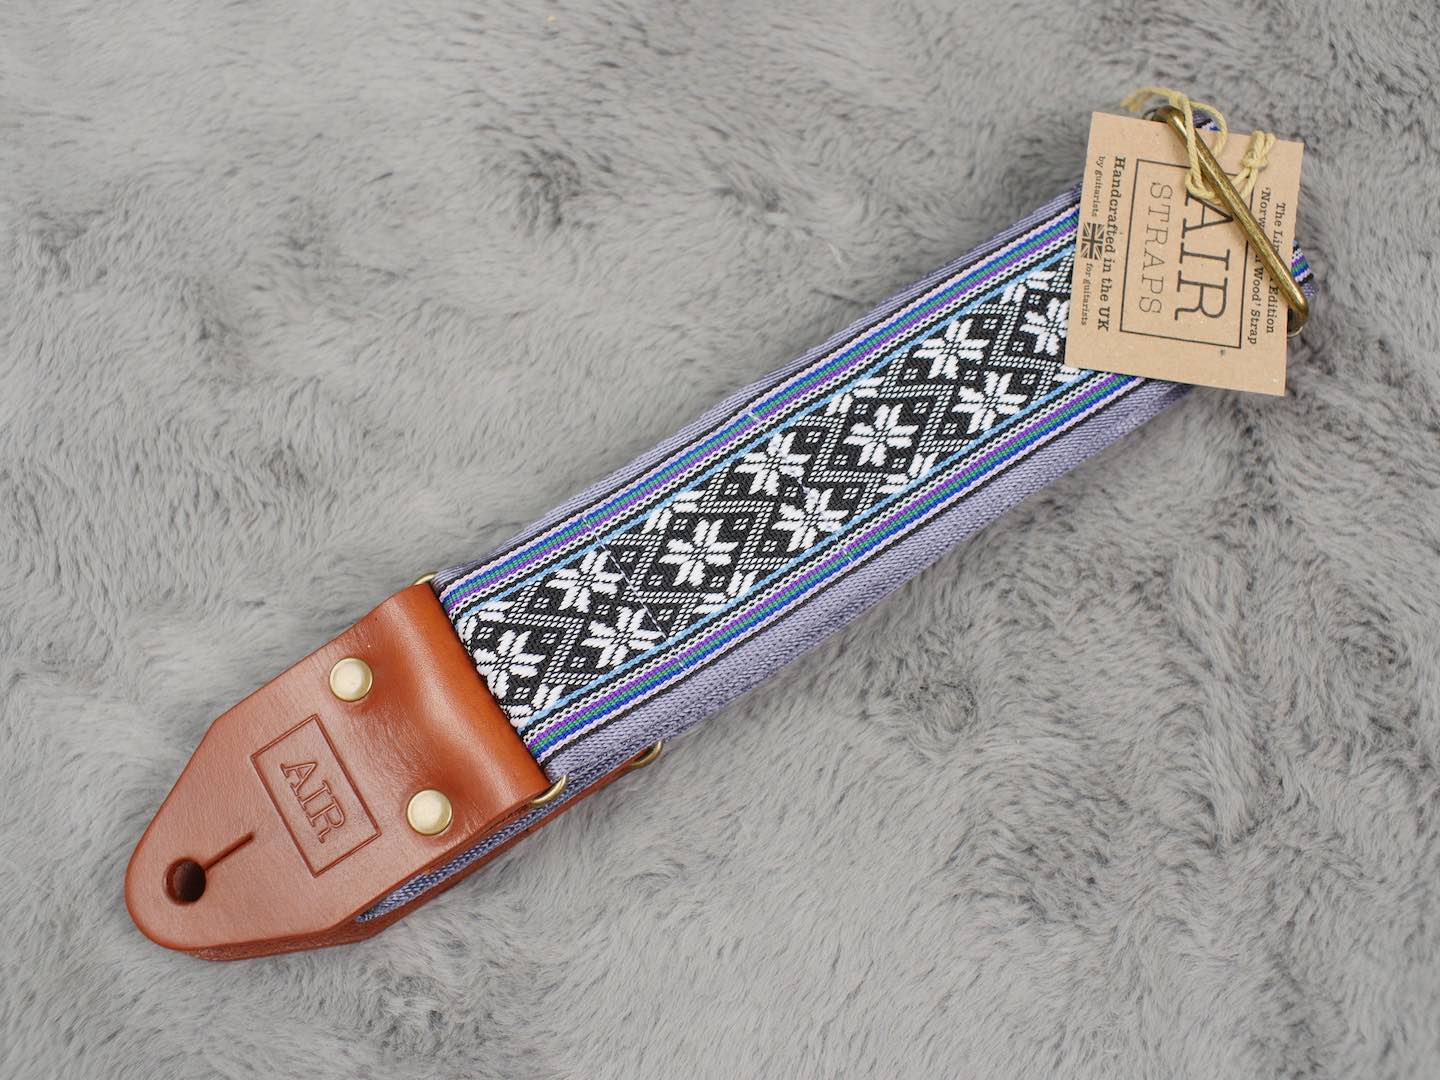 Air Straps Limited Edition 'Norwegian Wood' Guitar Strap - Free Shipping!